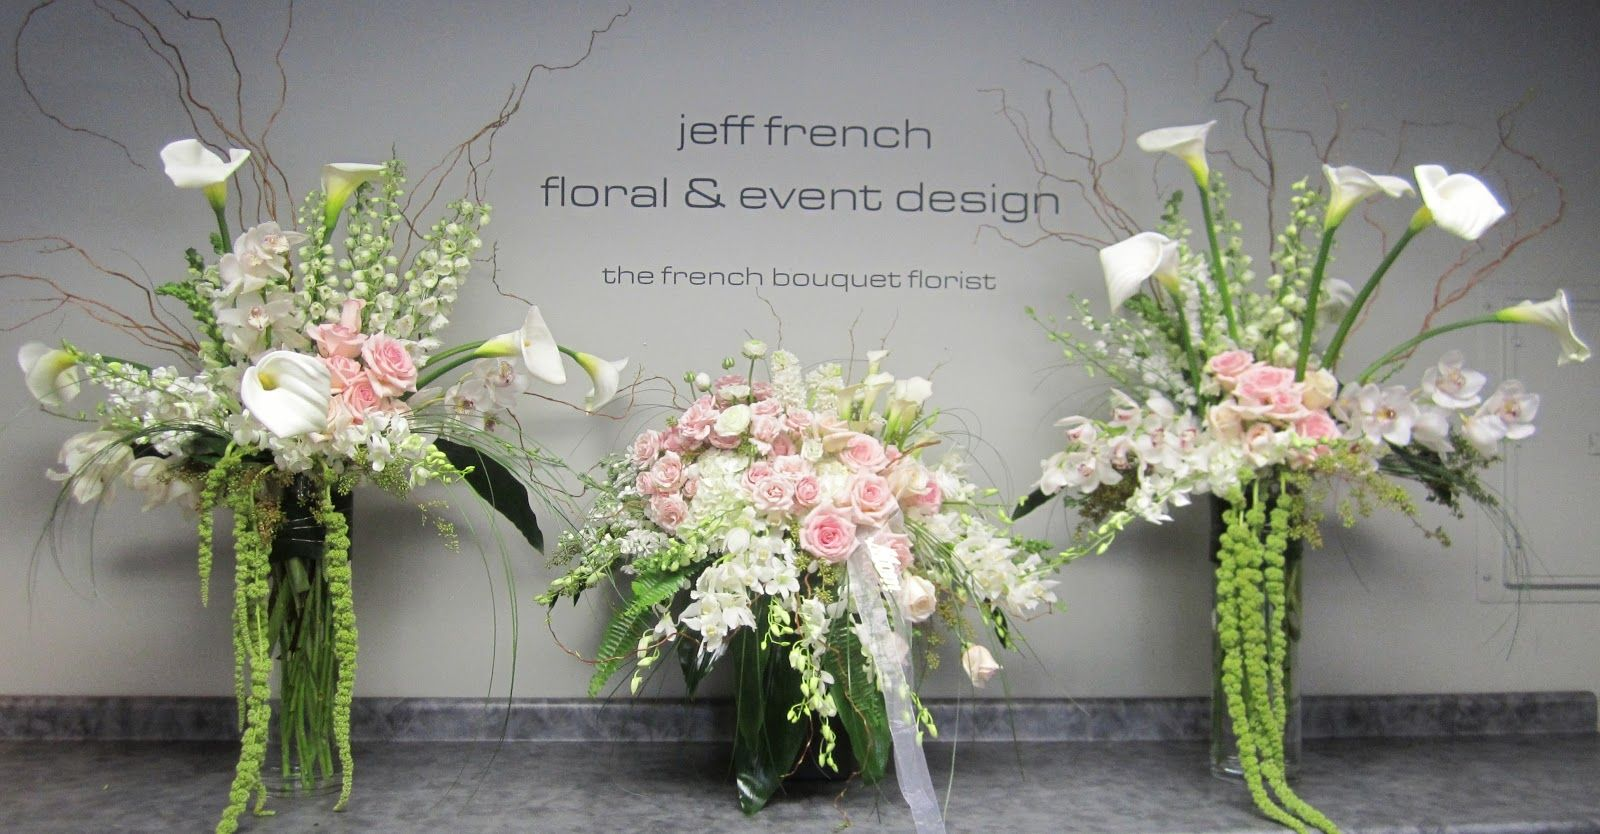 Funeral arrangements by Jeff French Floral and Event Design